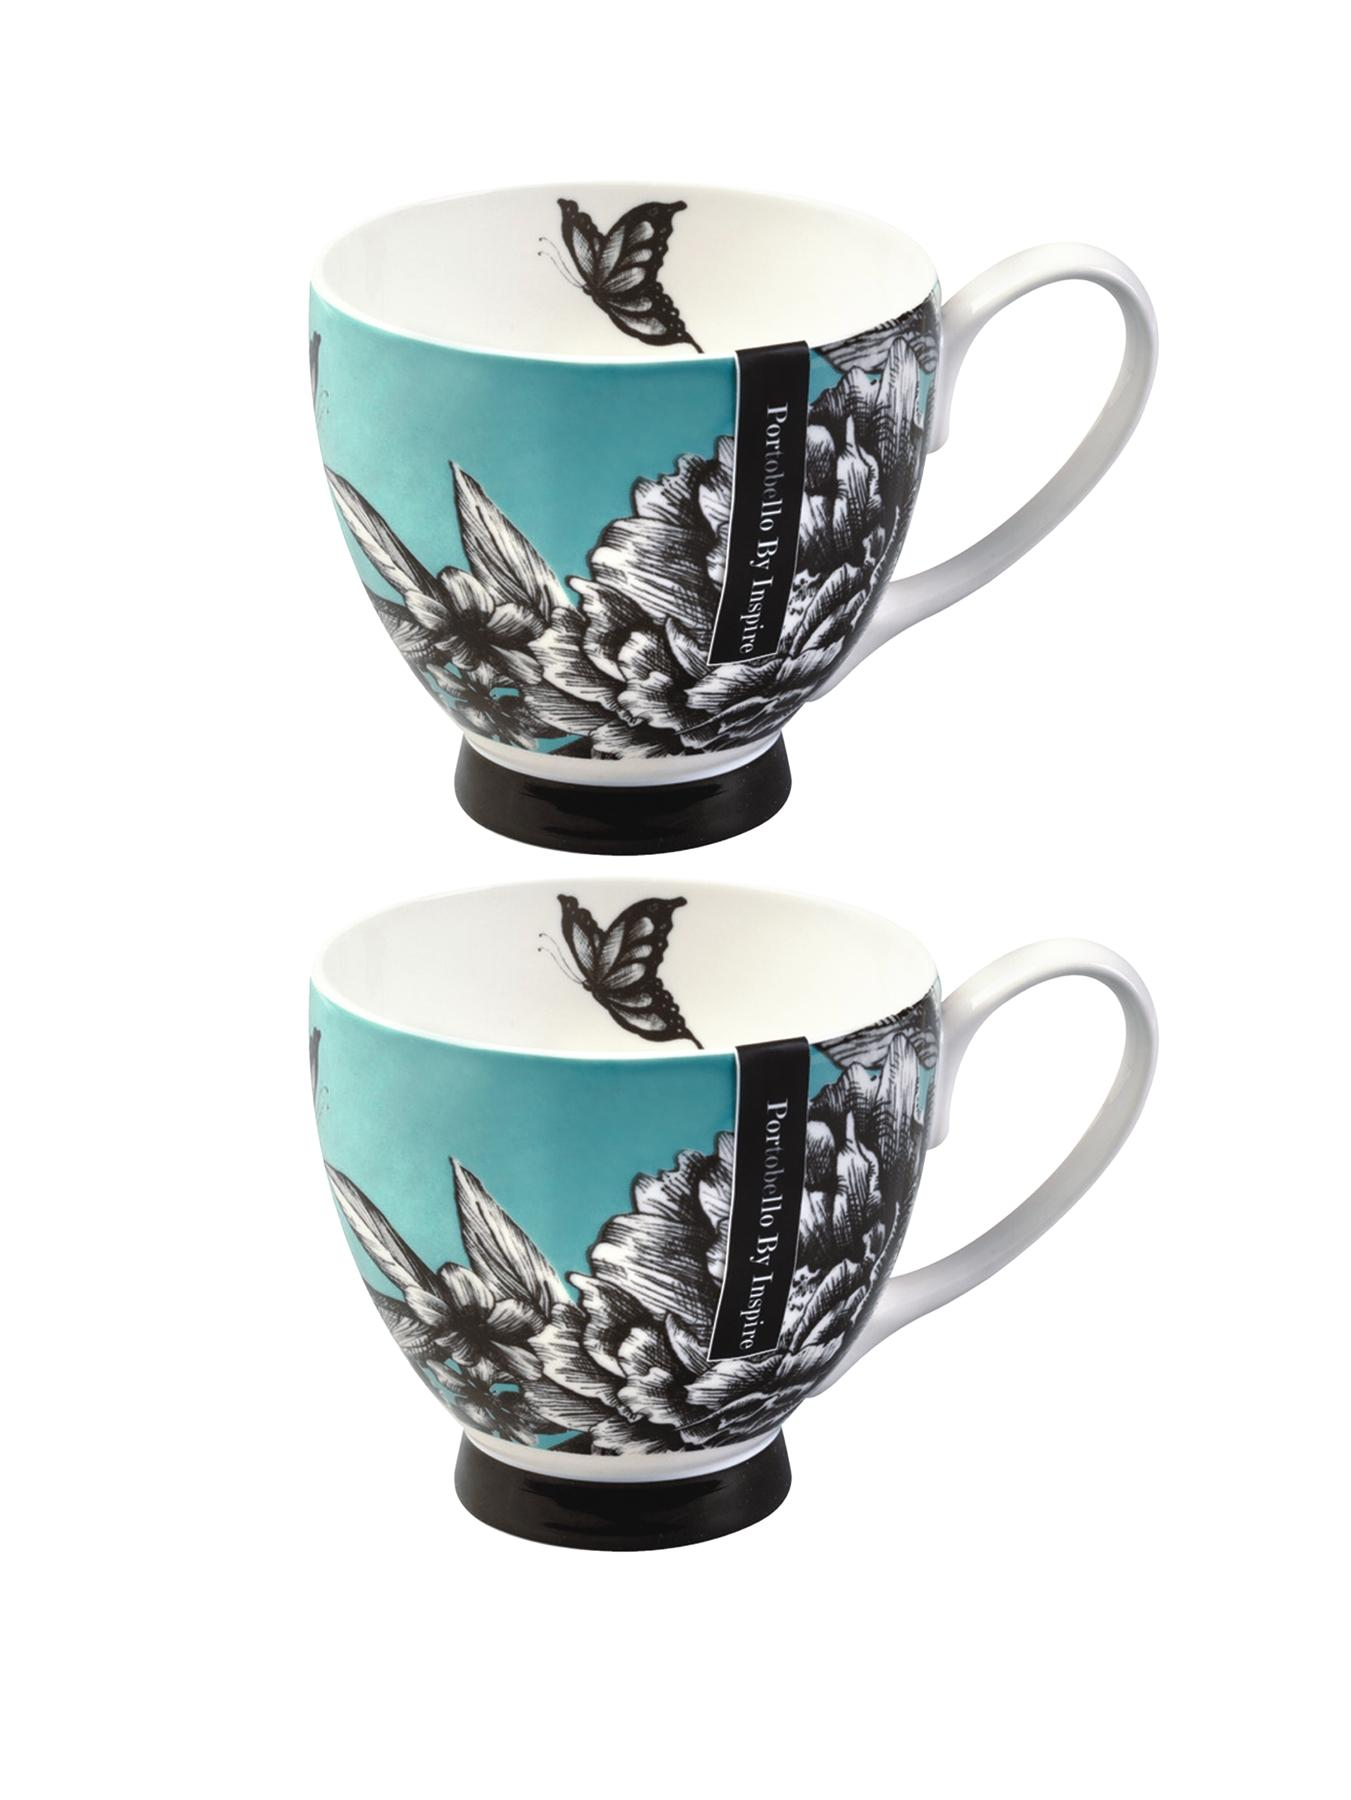 Zen Garden Teal Footed Mugs (Set of 2) - Teal